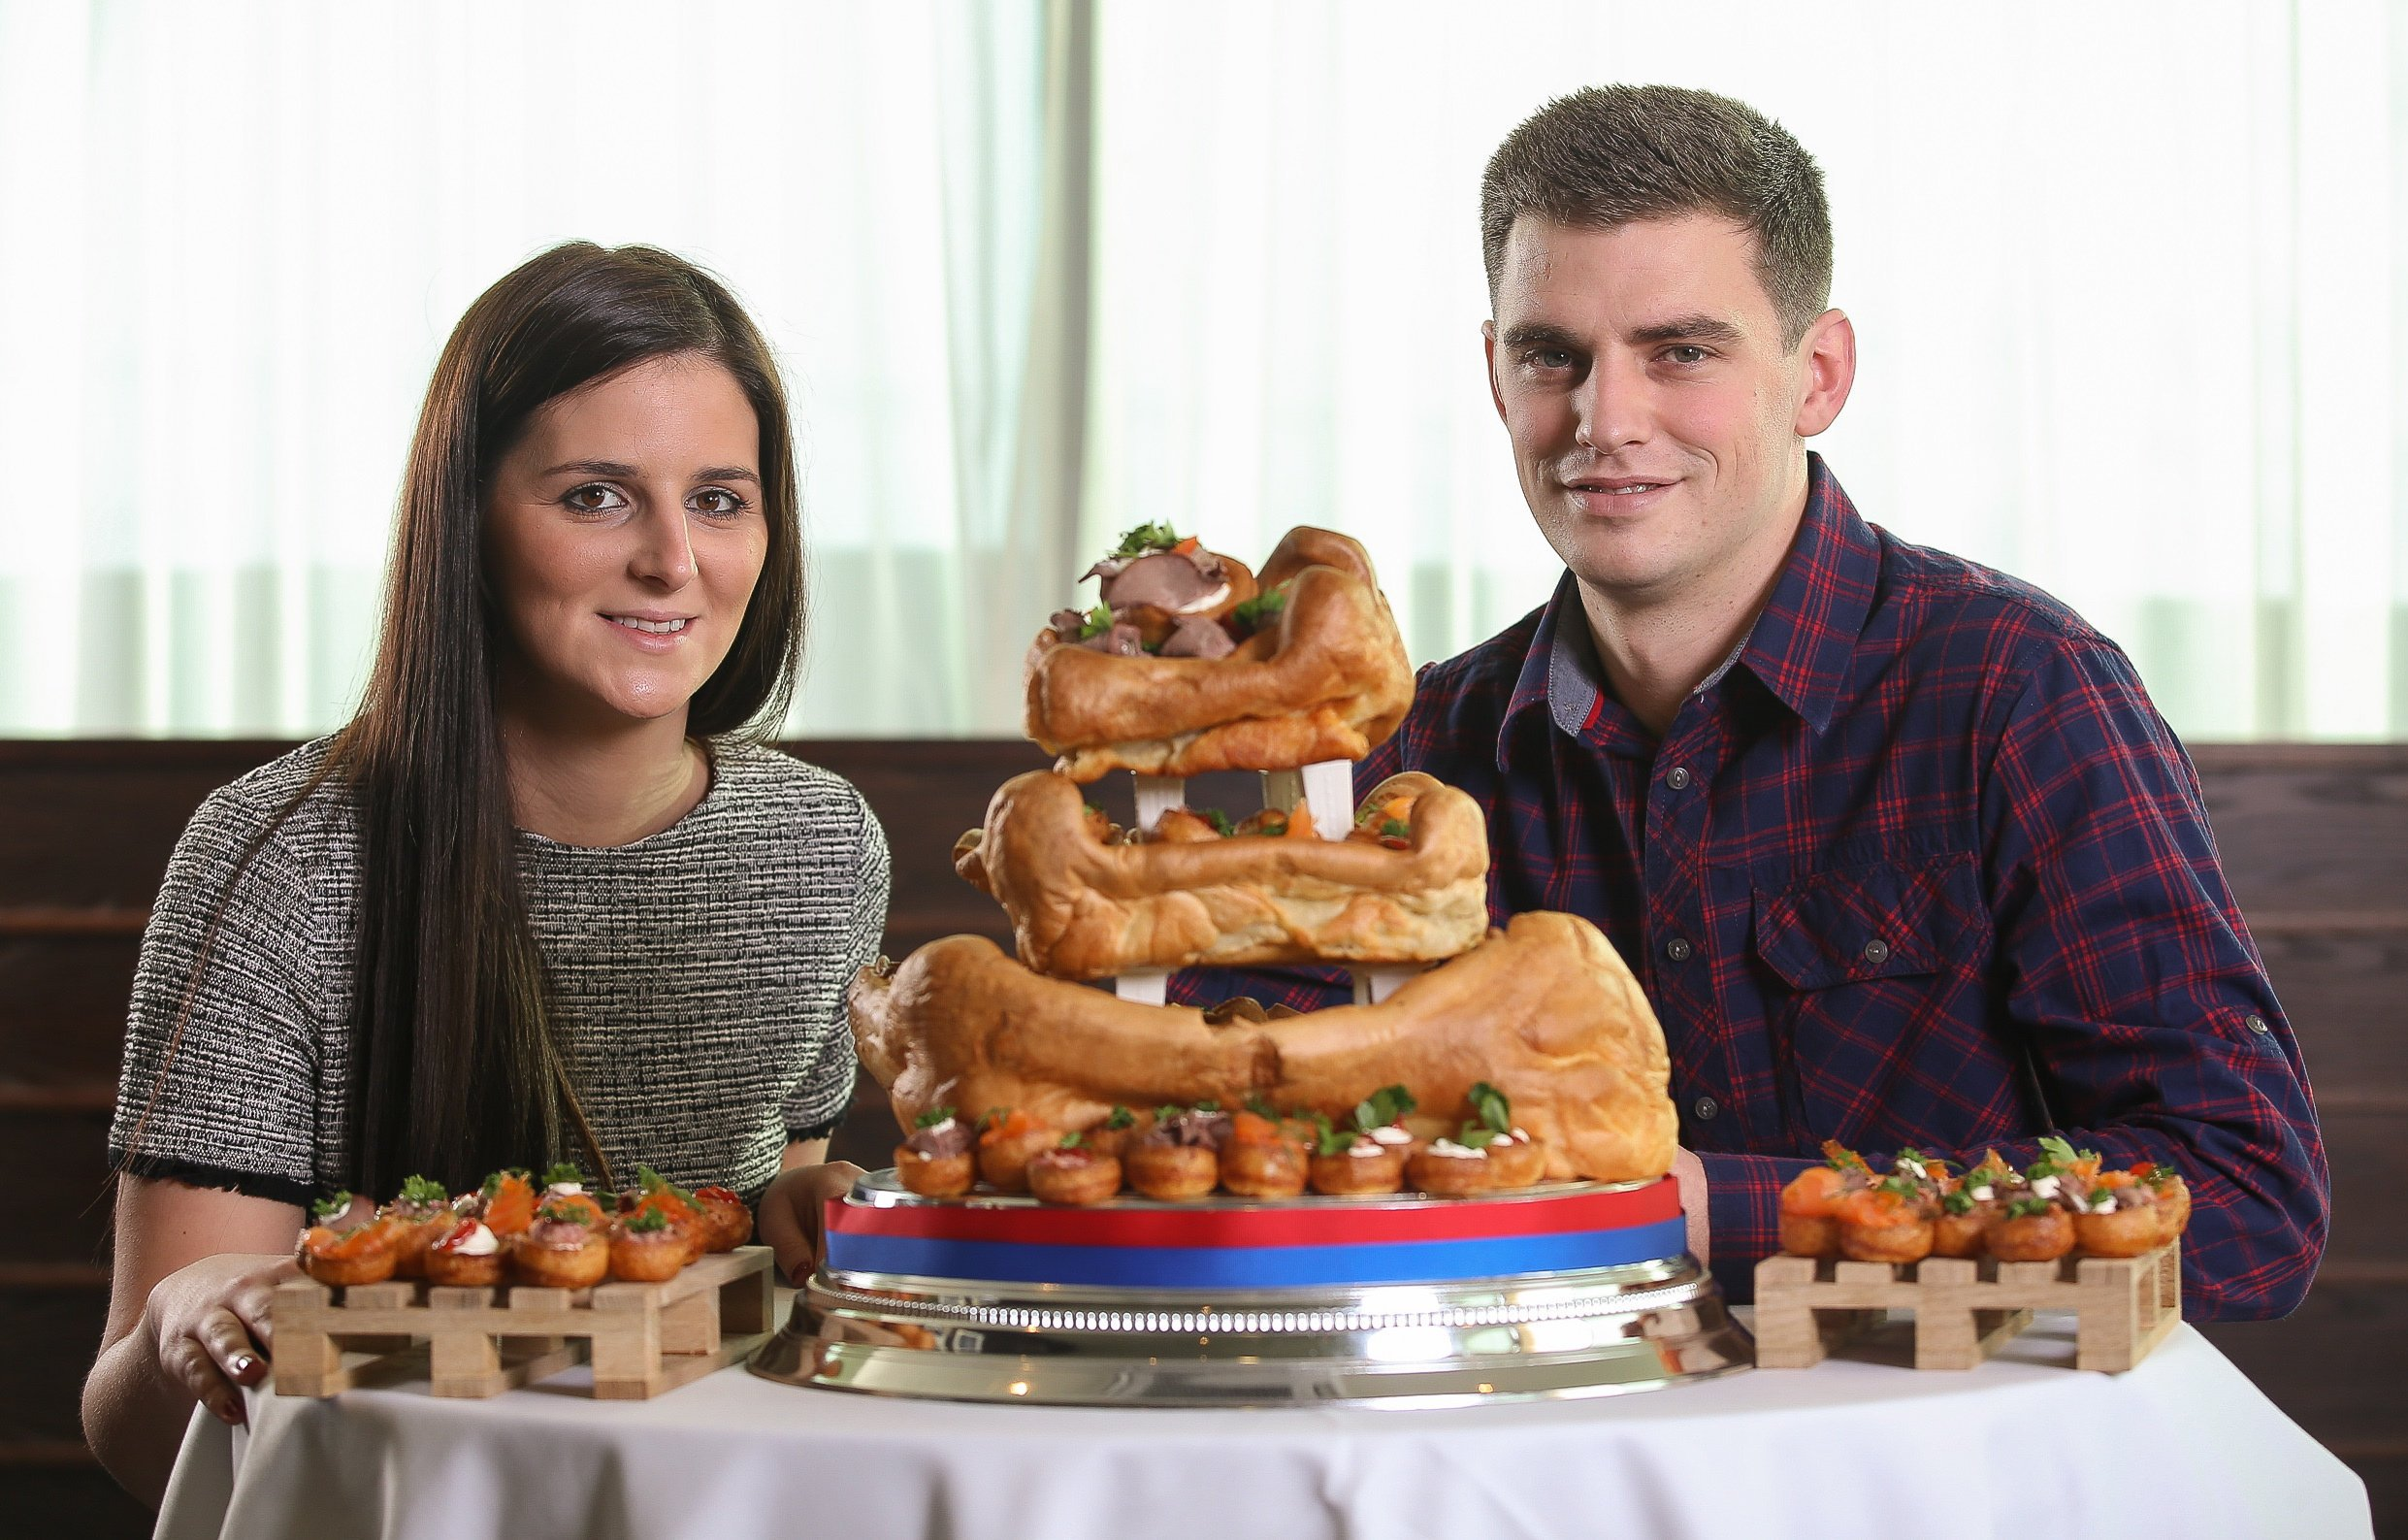 Adam Nicholson and Becca Piwinksi of Beverley, East Yorkshire who have won the ultimate northern wedding cake - made from YORKSHIRE PUDDINGS. See Ross Parry copy RPYPUD : A couple preparing for wedded bliss have won the ultimate northern wedding cake - made from YORKSHIRE PUDDINGS. Adam Nicholson and Becca Piwinski will be treating their guests to the deliciously different wedding cake on their big day in July on a Yorkshire farm. The lucky pair won the battered delight, created by experts at Aunt Bessieís, in a competition to celebrate National Yorkshire Pudding Day on Sunday. The three-tiered pud features delicate Yorkshire pudding canapÈs and even has a gravy fountain. Bride-to-be Becca said: ìWe are getting married on a Yorkshire farm and a giant Yorkshire pudding wedding cake felt like a brilliant idea to wow our guests with.